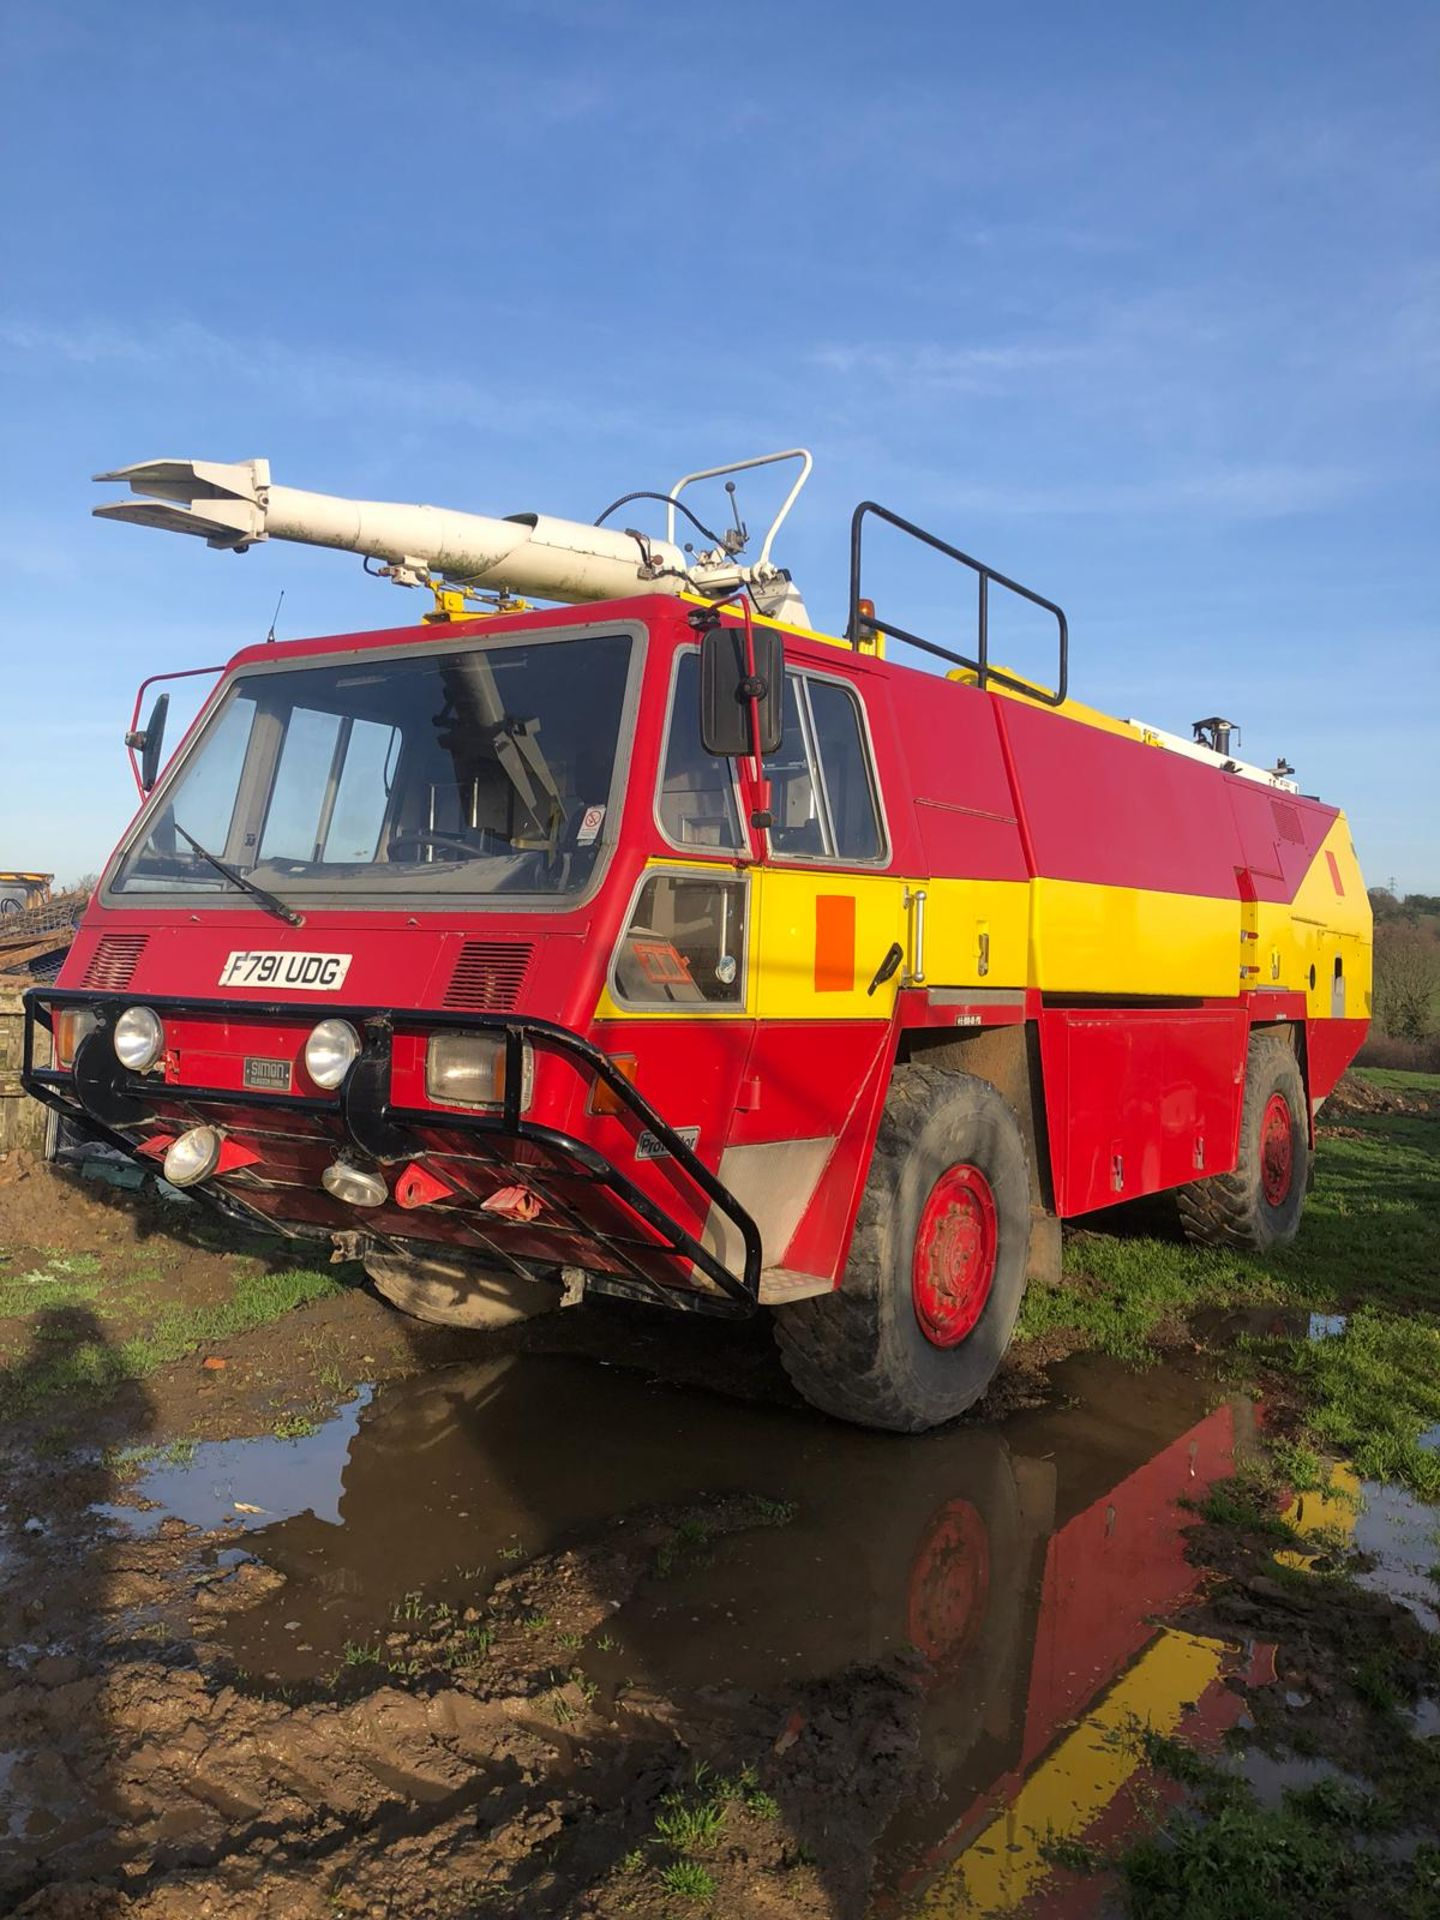 Lot 415 - 1989 SIMON GLOSTER SARO PROTECTOR FIRE ENGINE RED/YELLOW *PLUS VAT*